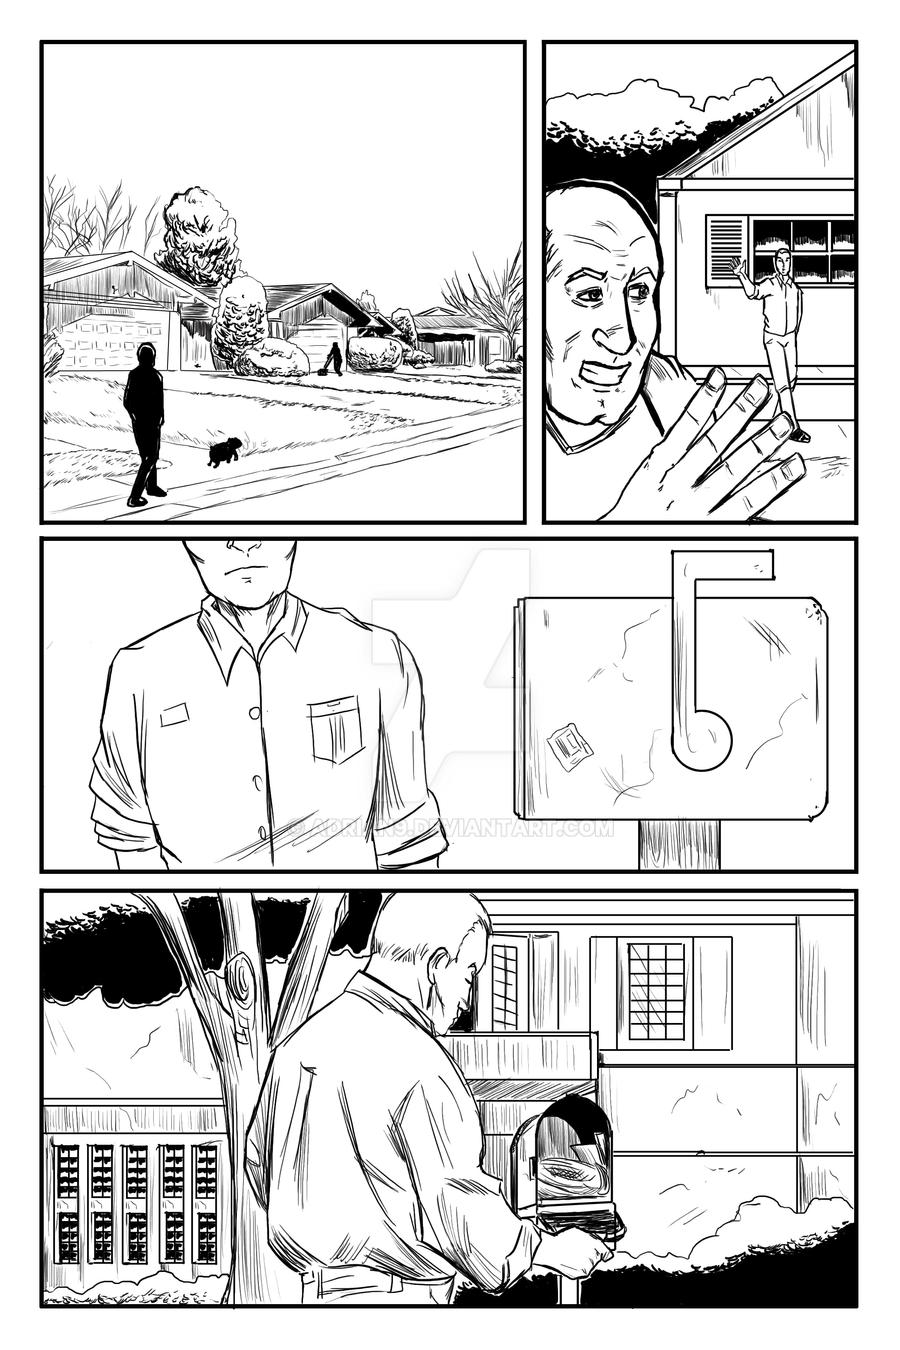 Quit PG6 by ADRIAN9